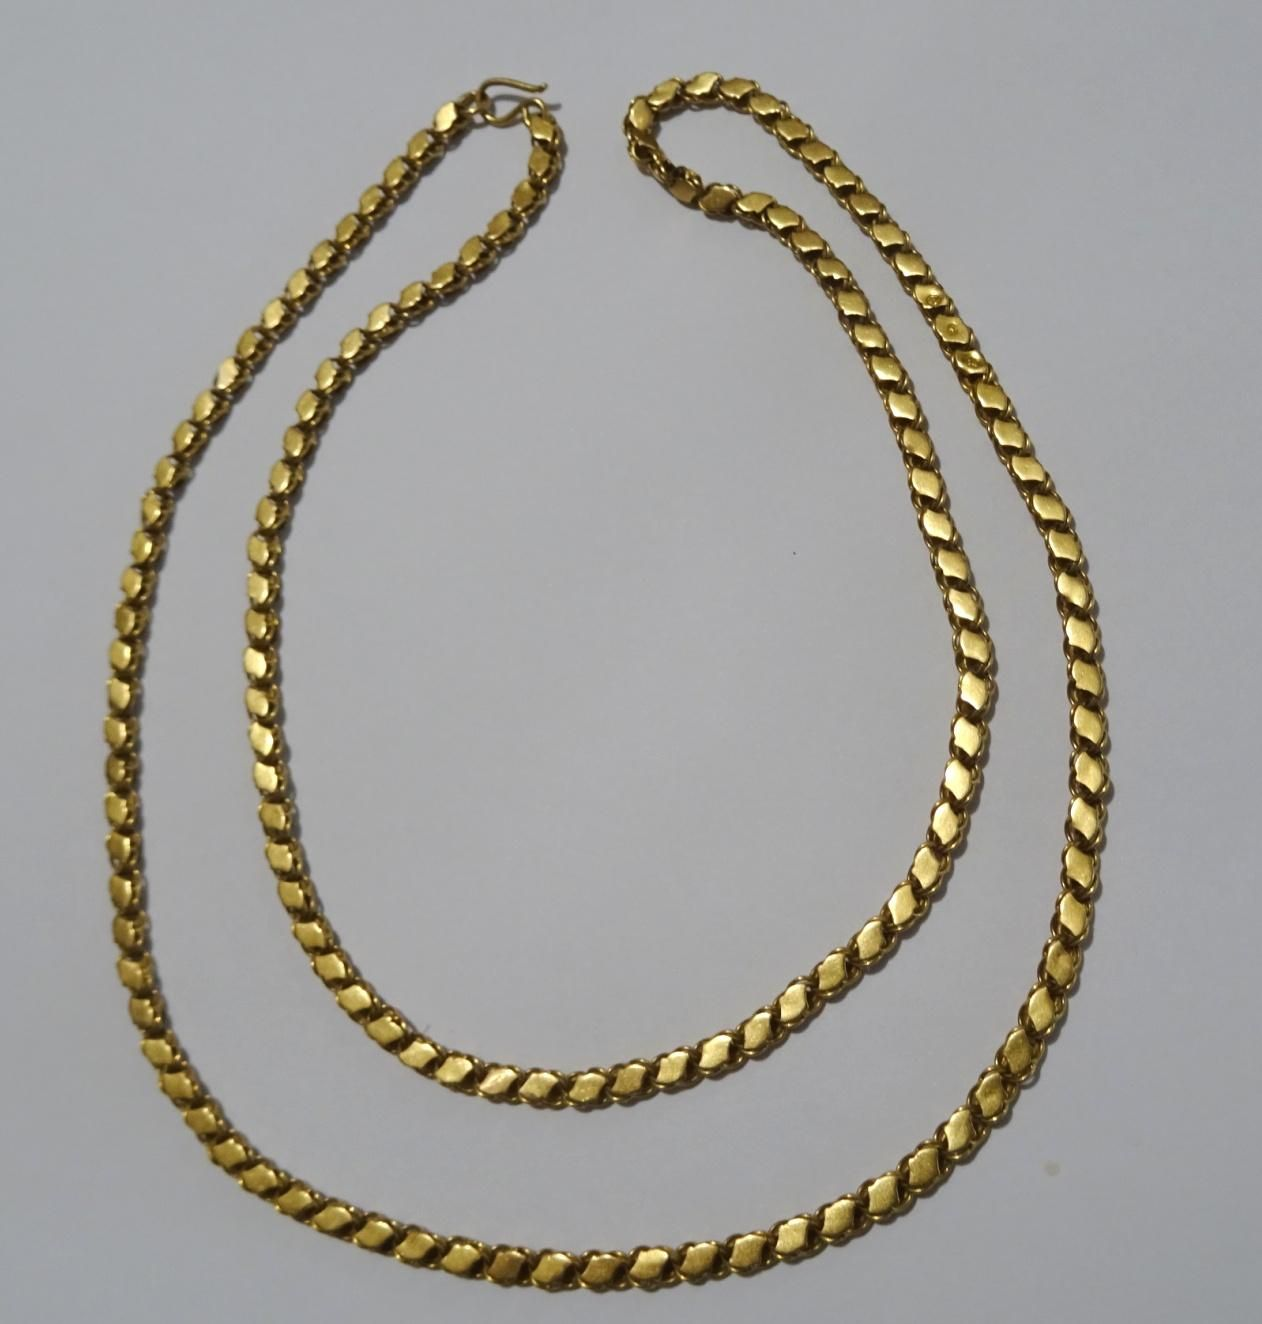 Traditional Vintage 21 Karat Gold Handmade Necklace From Allepo Haleb Syria Handmade Gold Necklace Necklace Handmade Necklaces